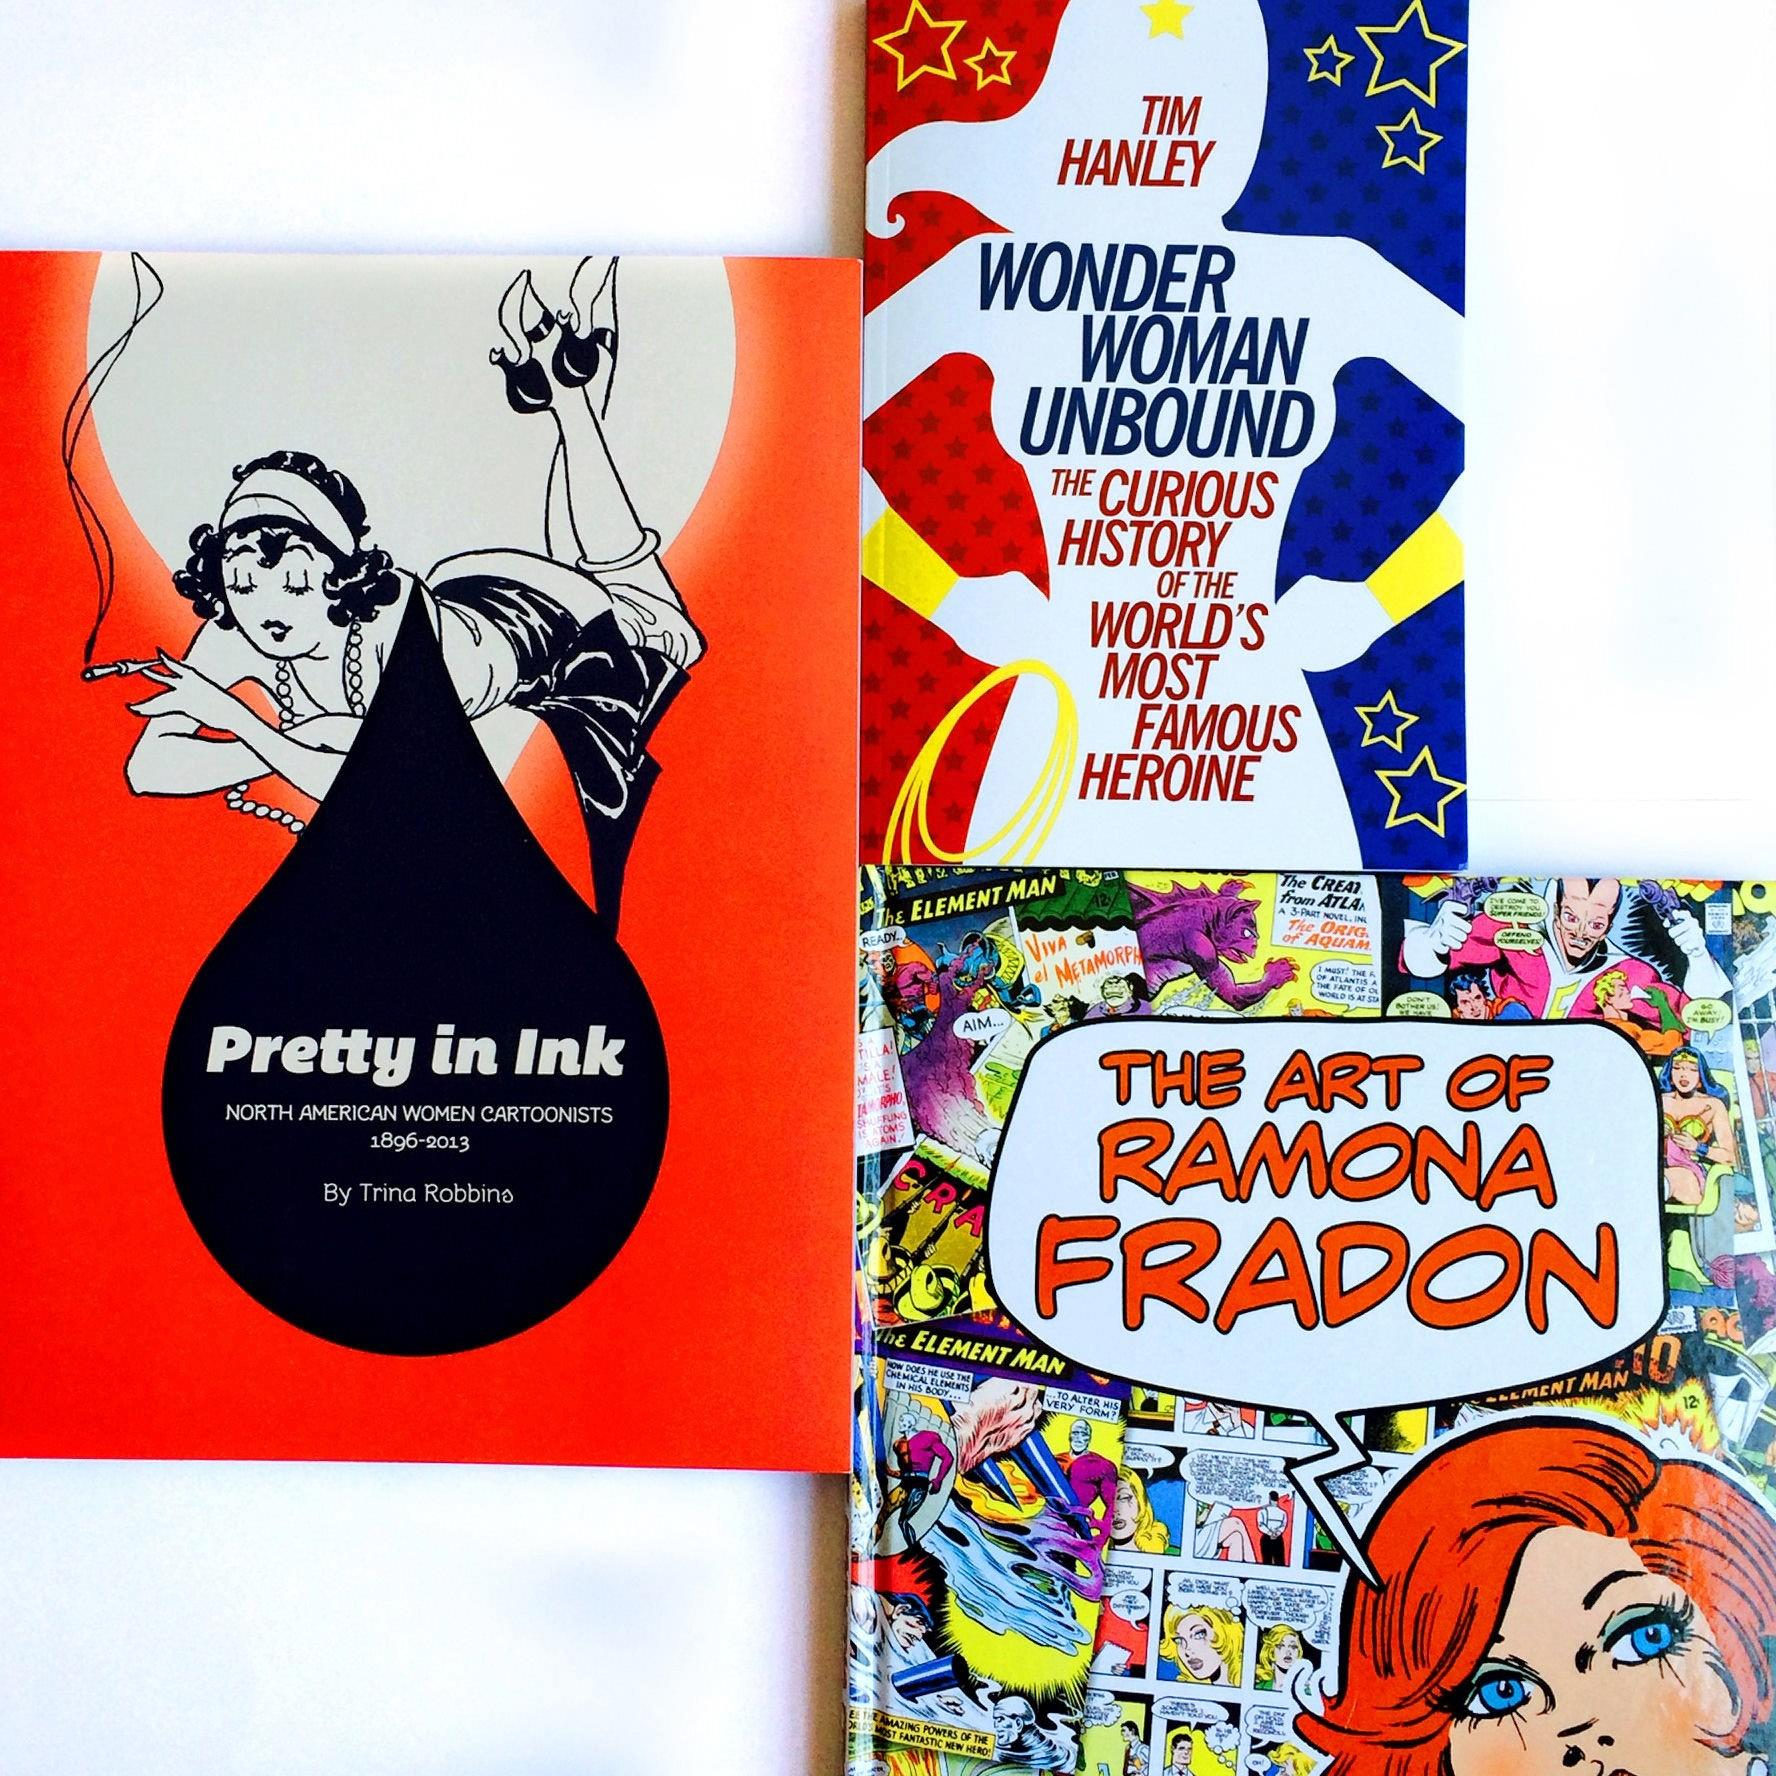 """""""Pretty in Ink"""" by Trina Robbins, """"The Art of Ramona Fradon"""" edited by Robert Greenberger and """"Wonder Woman Unbound"""" by Tim Hanley"""